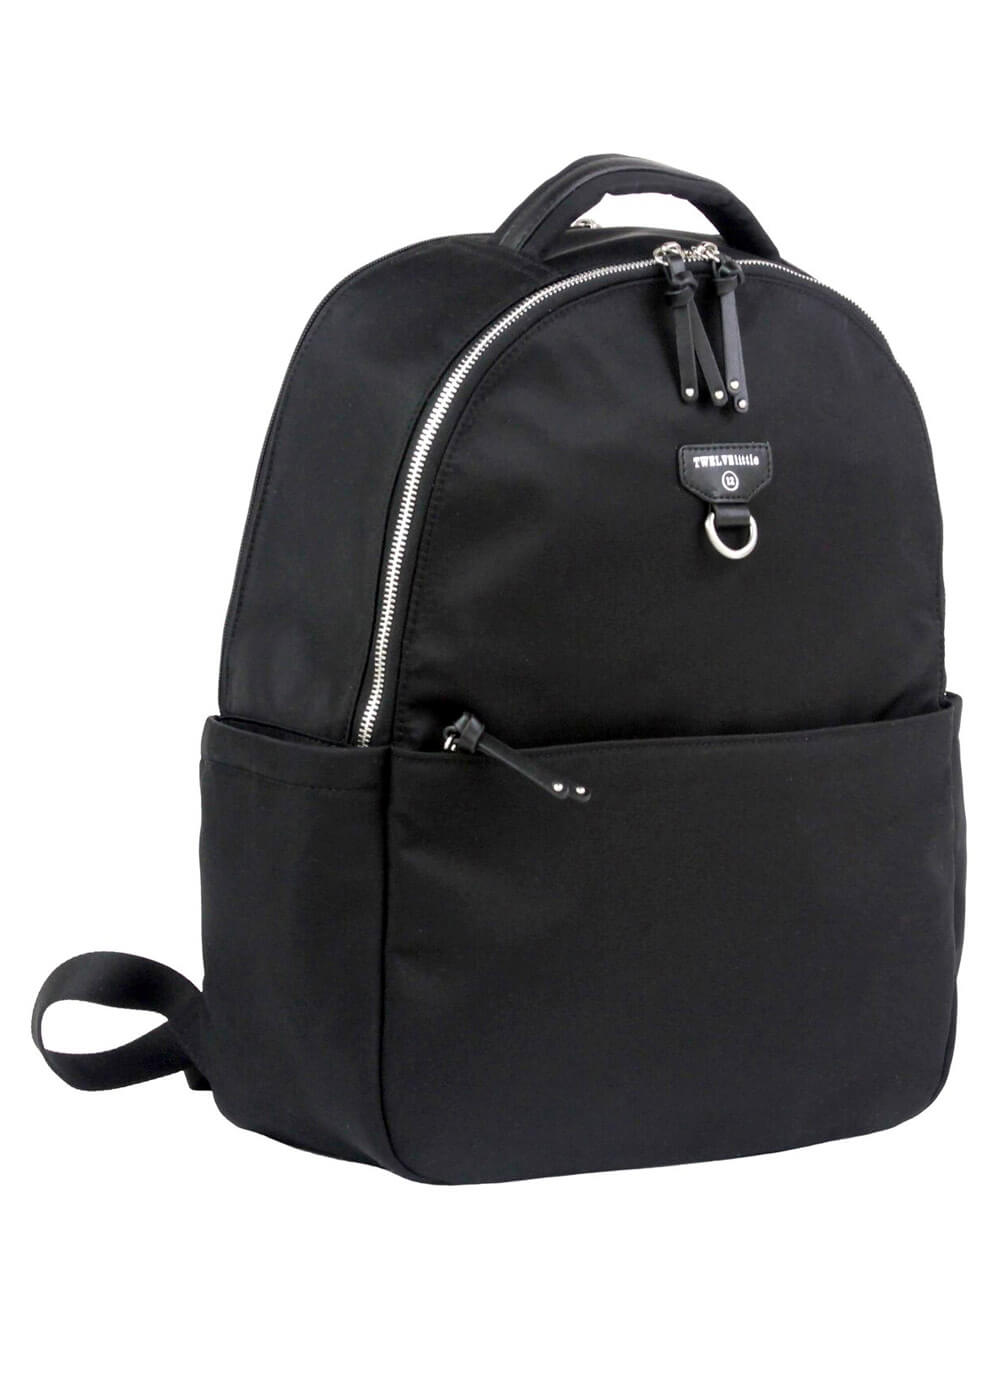 On-The-Go Baby Change Backpack in Black by TWELVE little